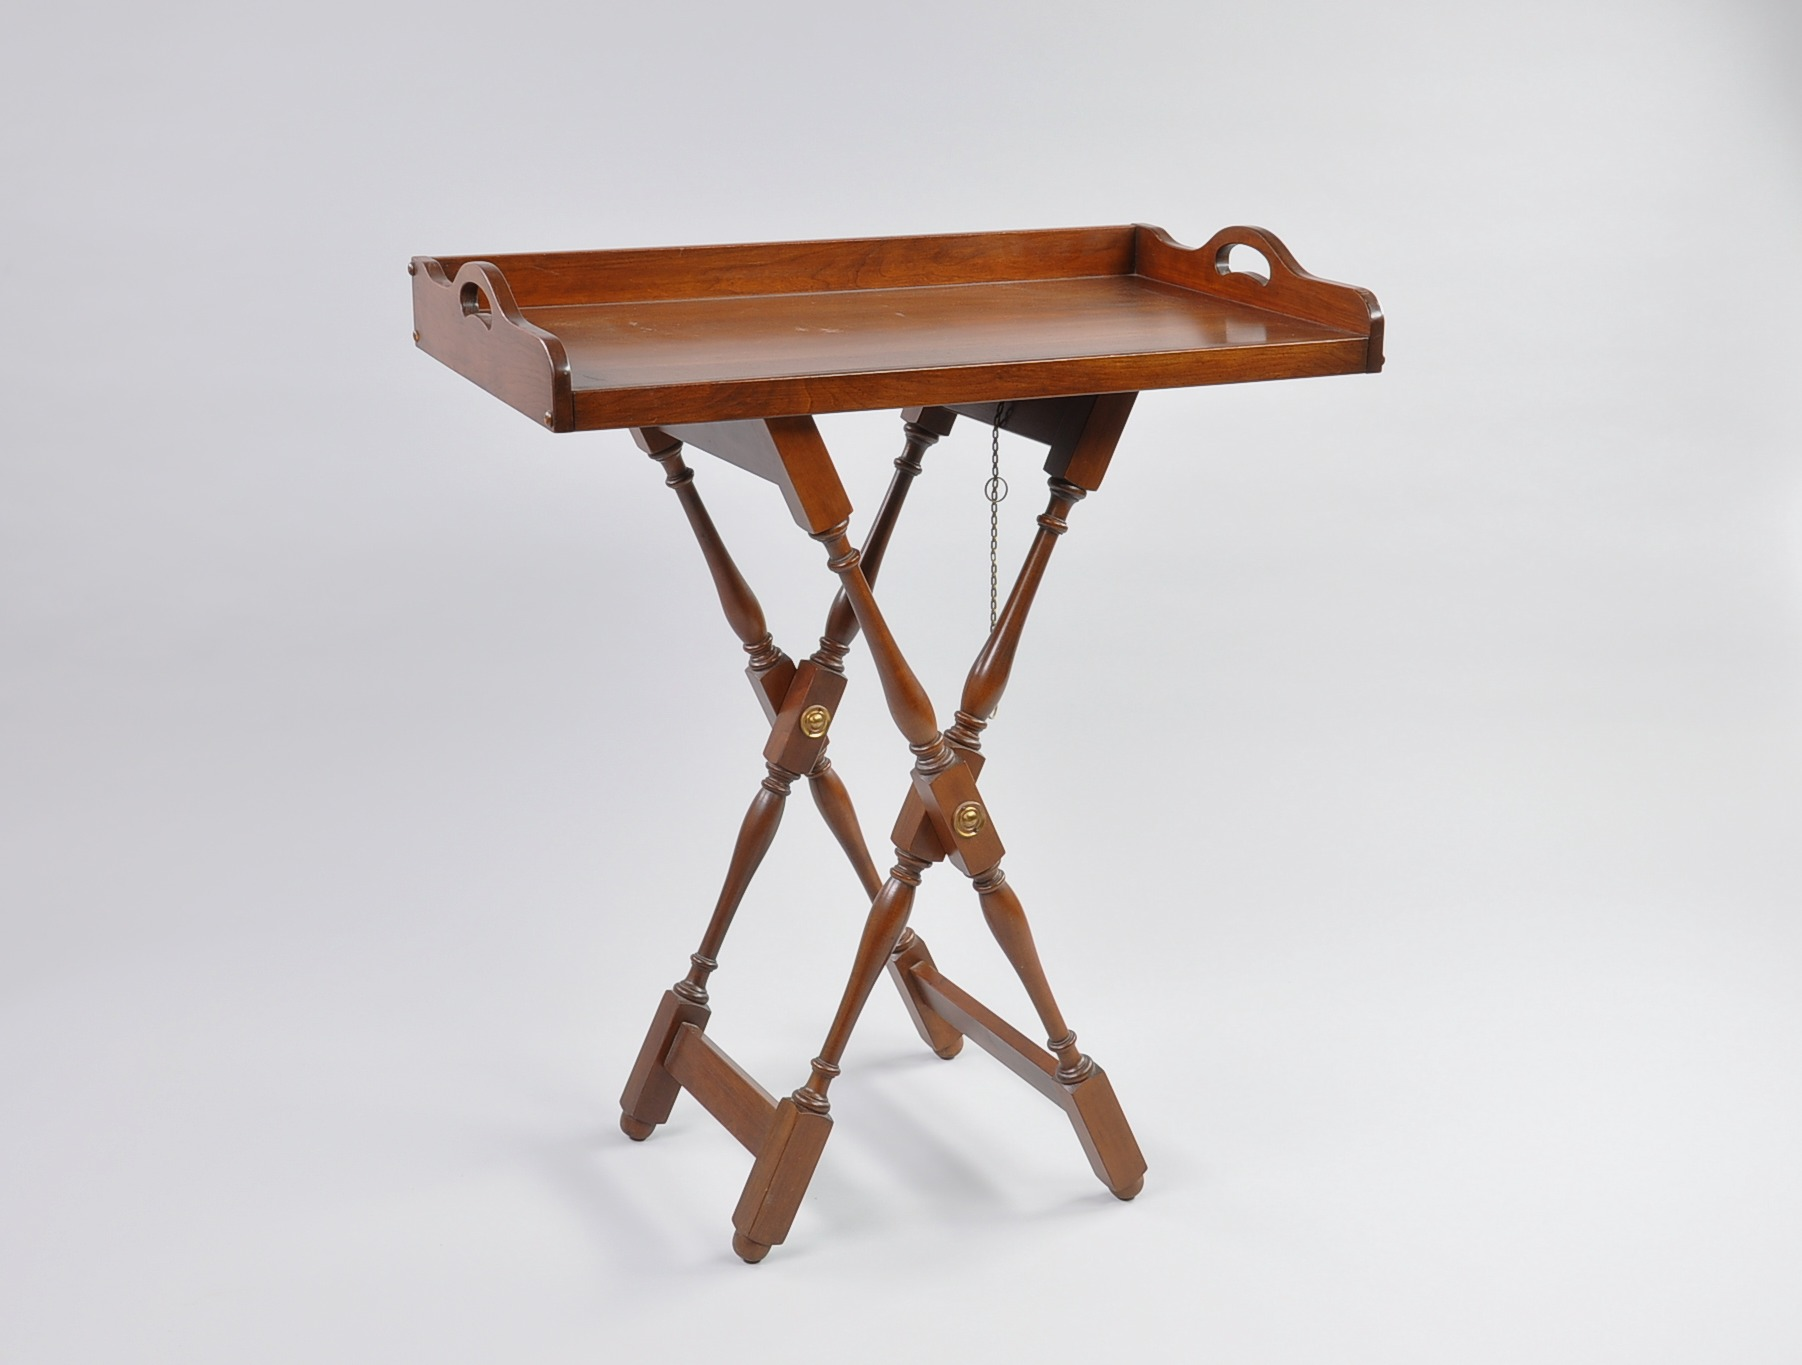 A Folding Butler s Tray Table 09 26 09 Sold $178 25